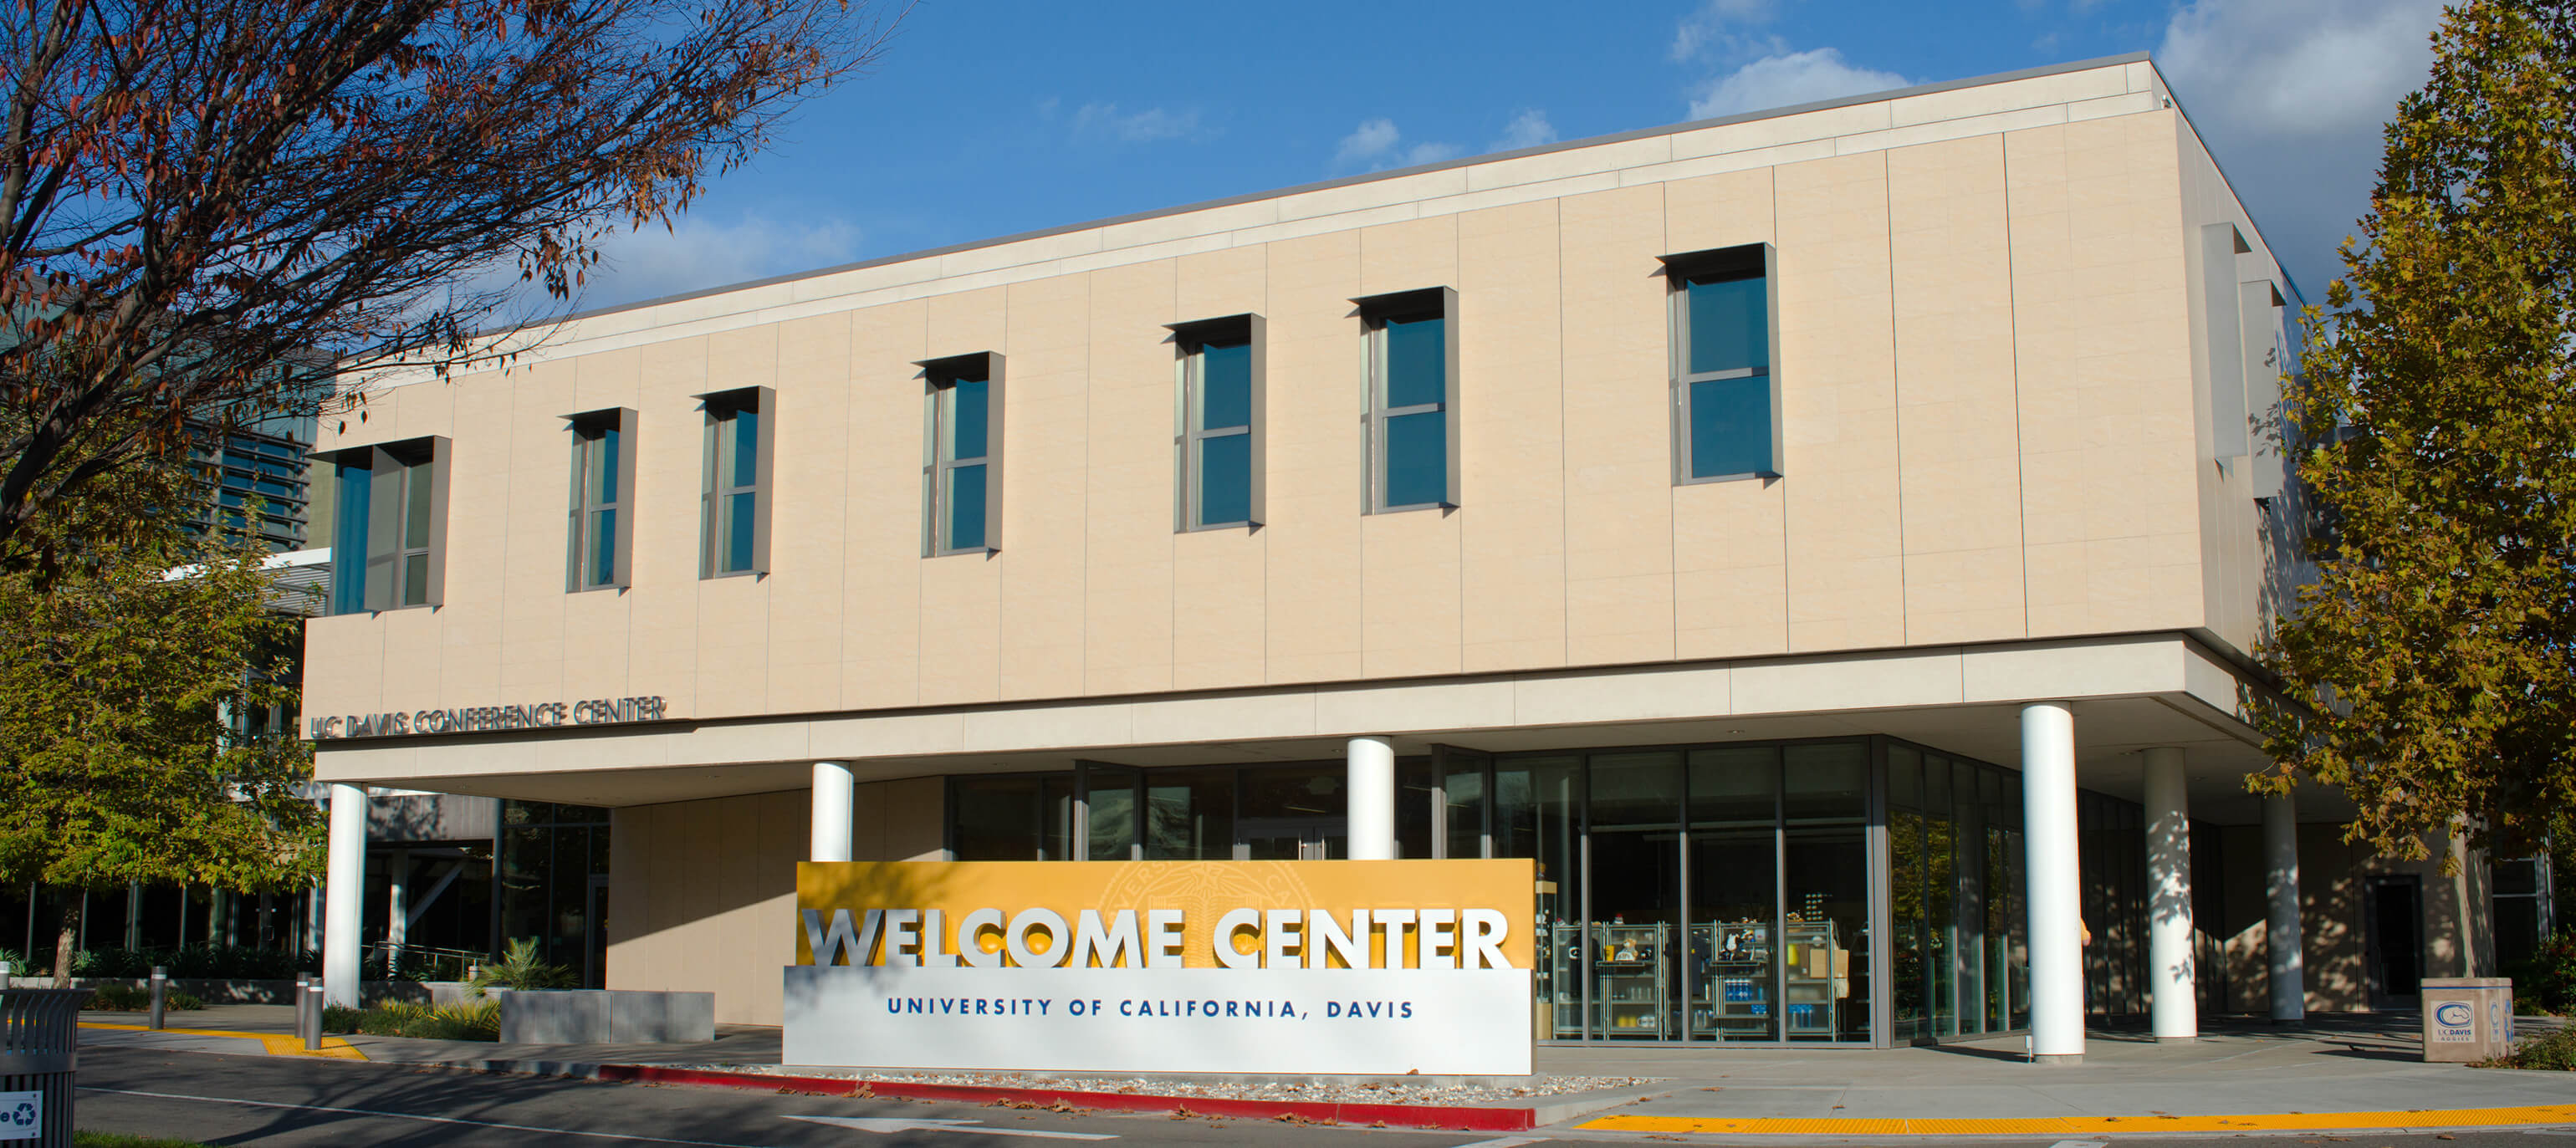 University of California at Davis Welcome Center